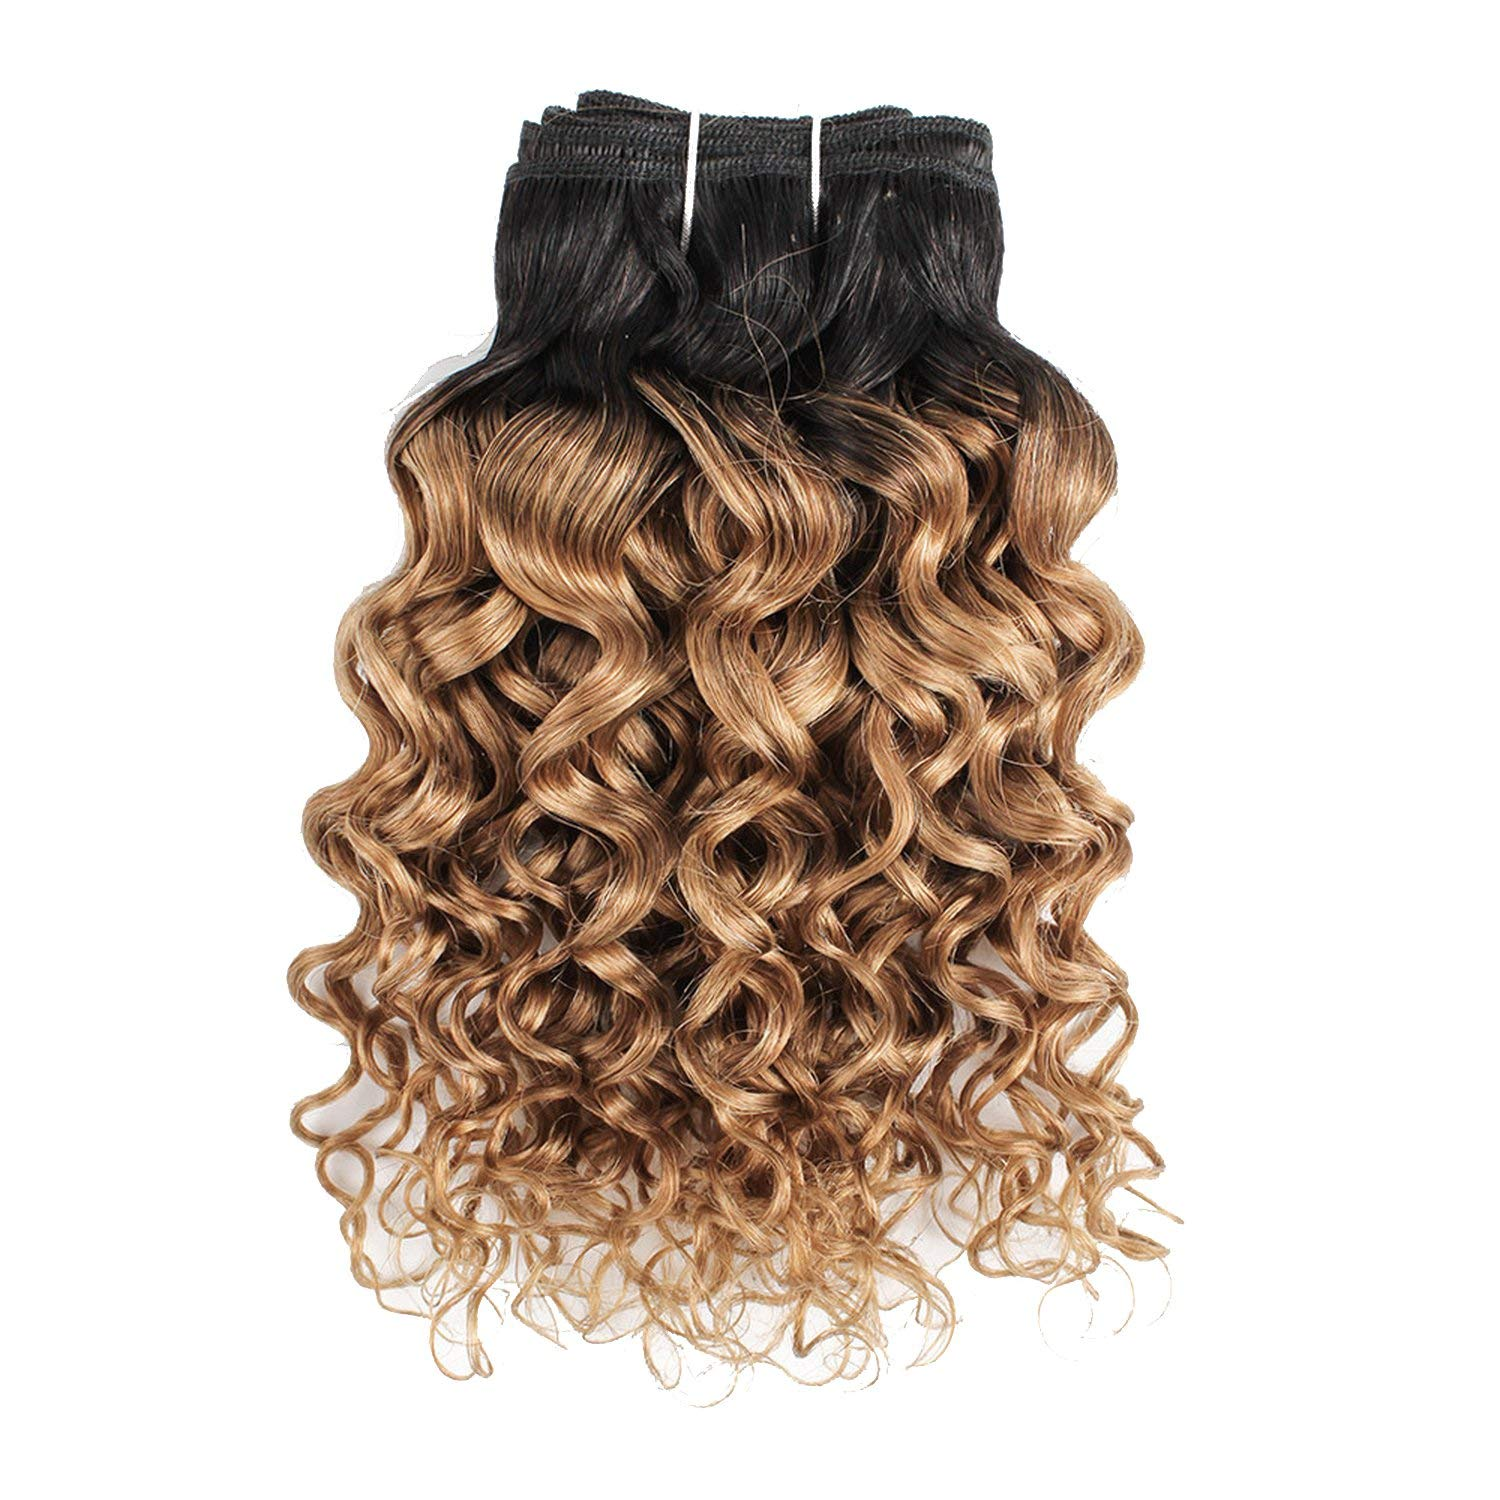 1 Bundle T 1B 27 Ombre Honey Blonde Brazilian Water Wave Hair Weave 10 24 inch Remy Human Hair Extension,14inches,T1B/27 by Peony red